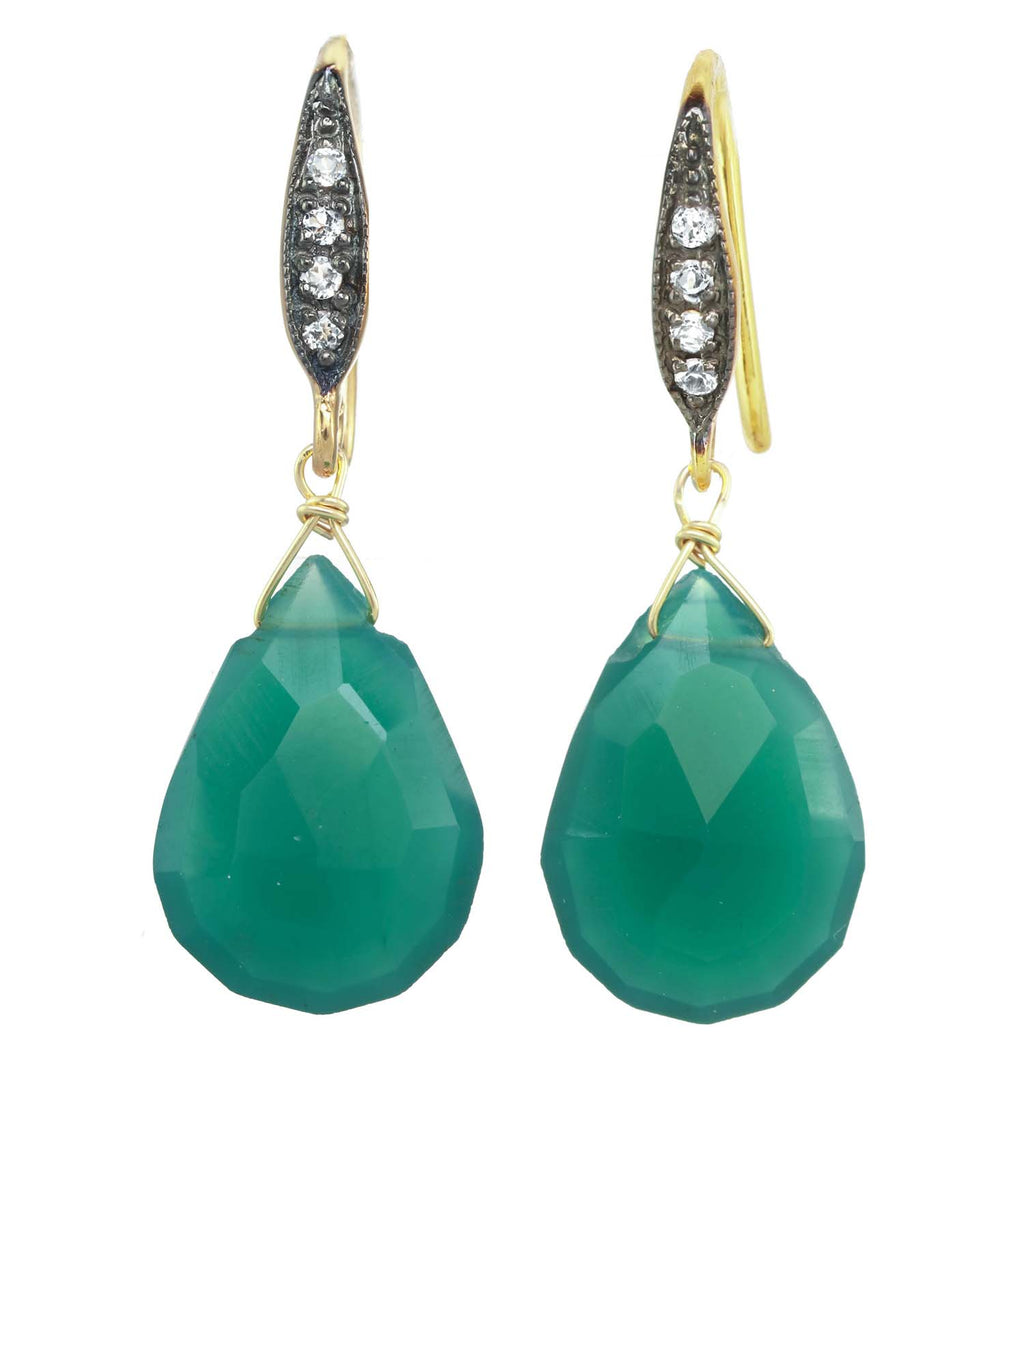 Margo Morrison Green Onyx and White Sapphire Teardrop Gem Earrings